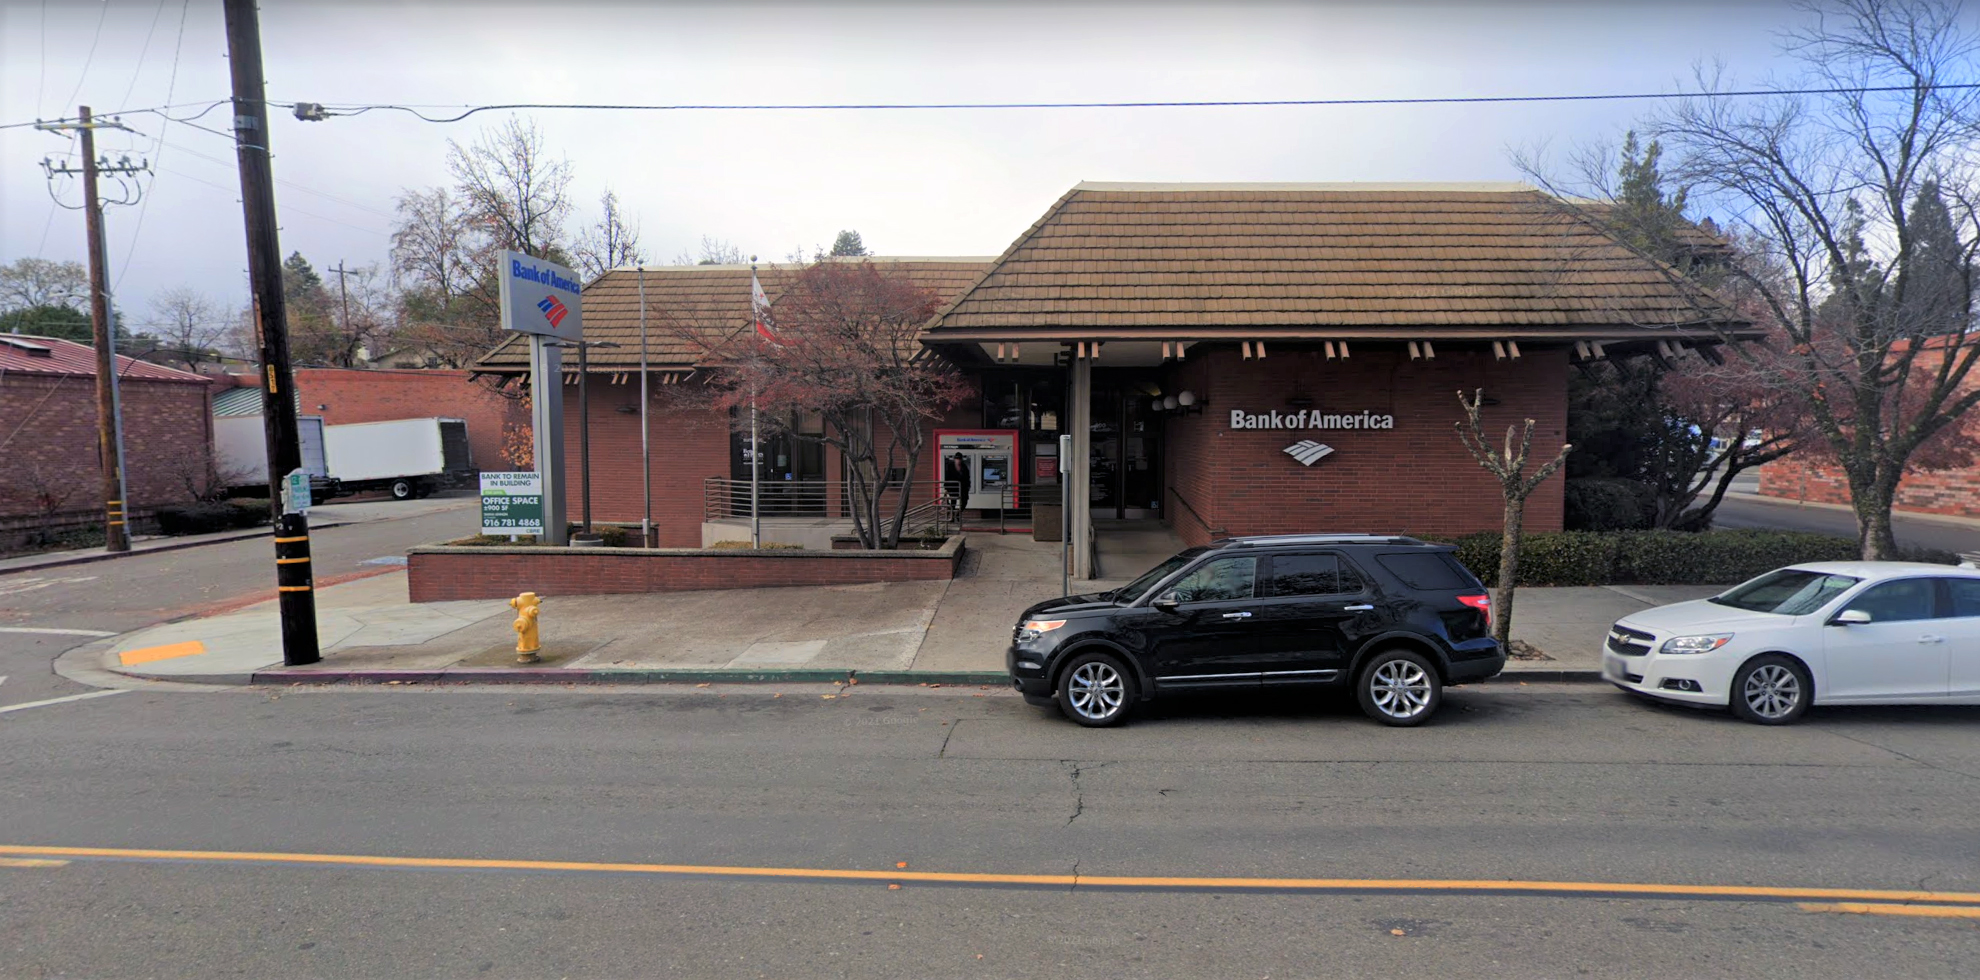 Bank of America financial center with walk-up ATM | 900 High St, Auburn, CA 95603